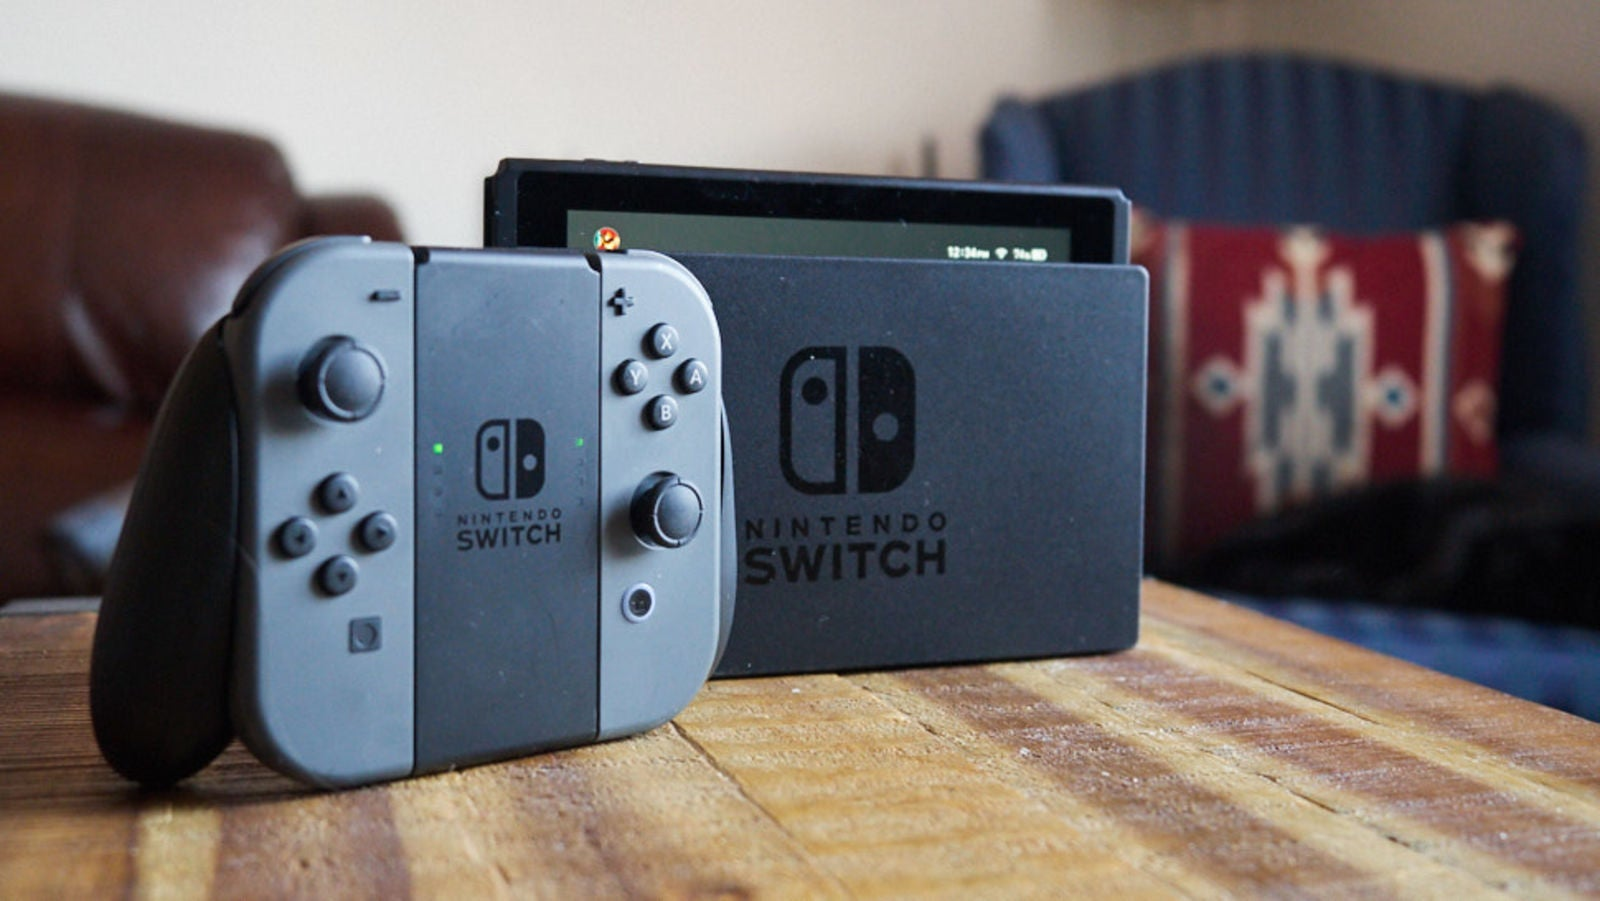 Nintendo Switch won't see 64GB game cards till 2019, report says